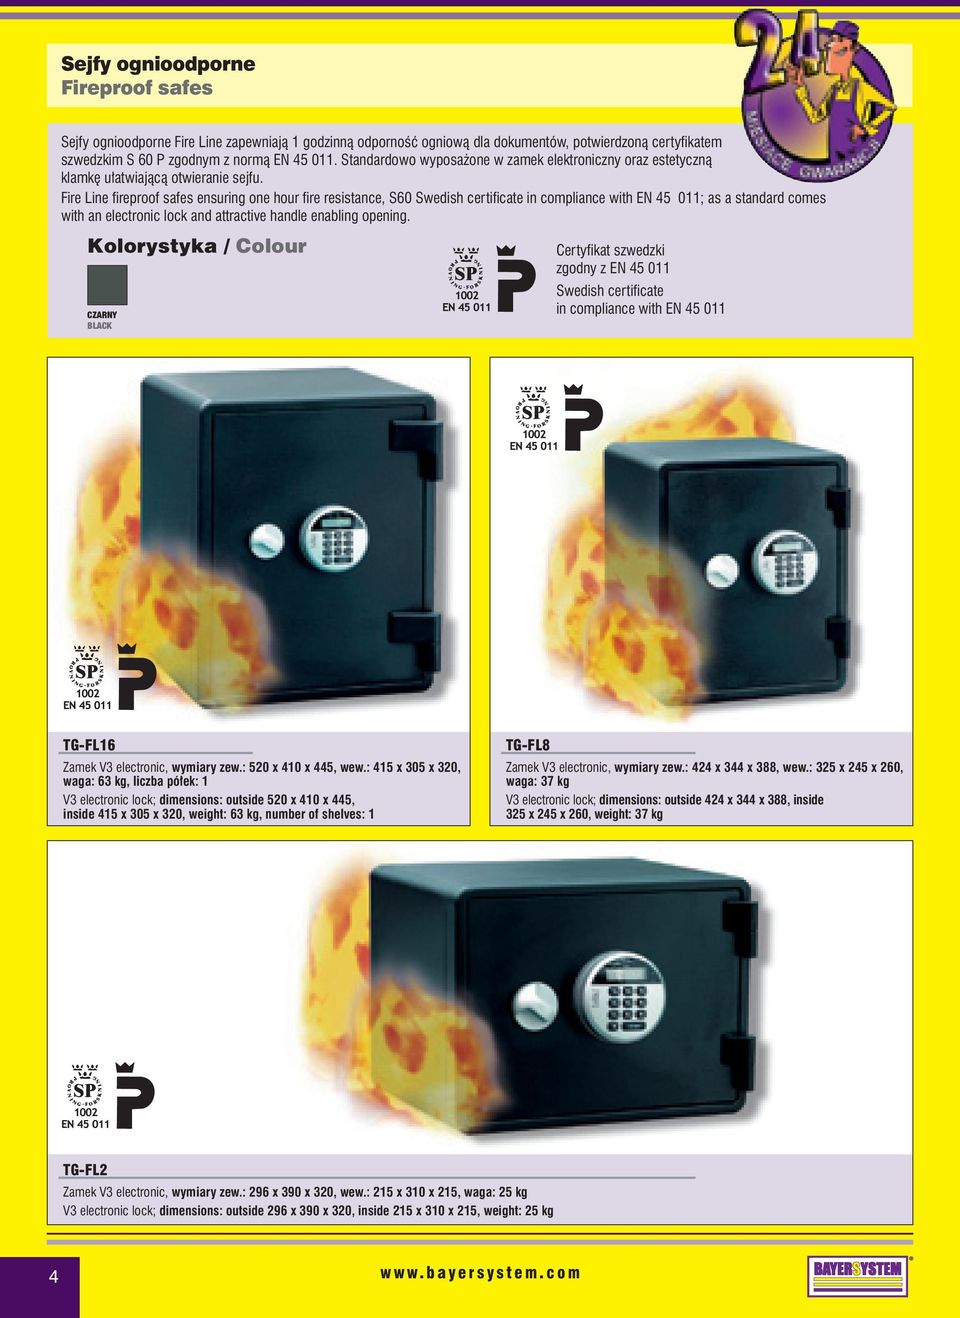 Fire Line fireproof safes ensuring one hour fire resistance, S60 Swedish certificate in compliance with EN 45 011; as a standard comes with an electronic lock and attractive handle enabling opening.